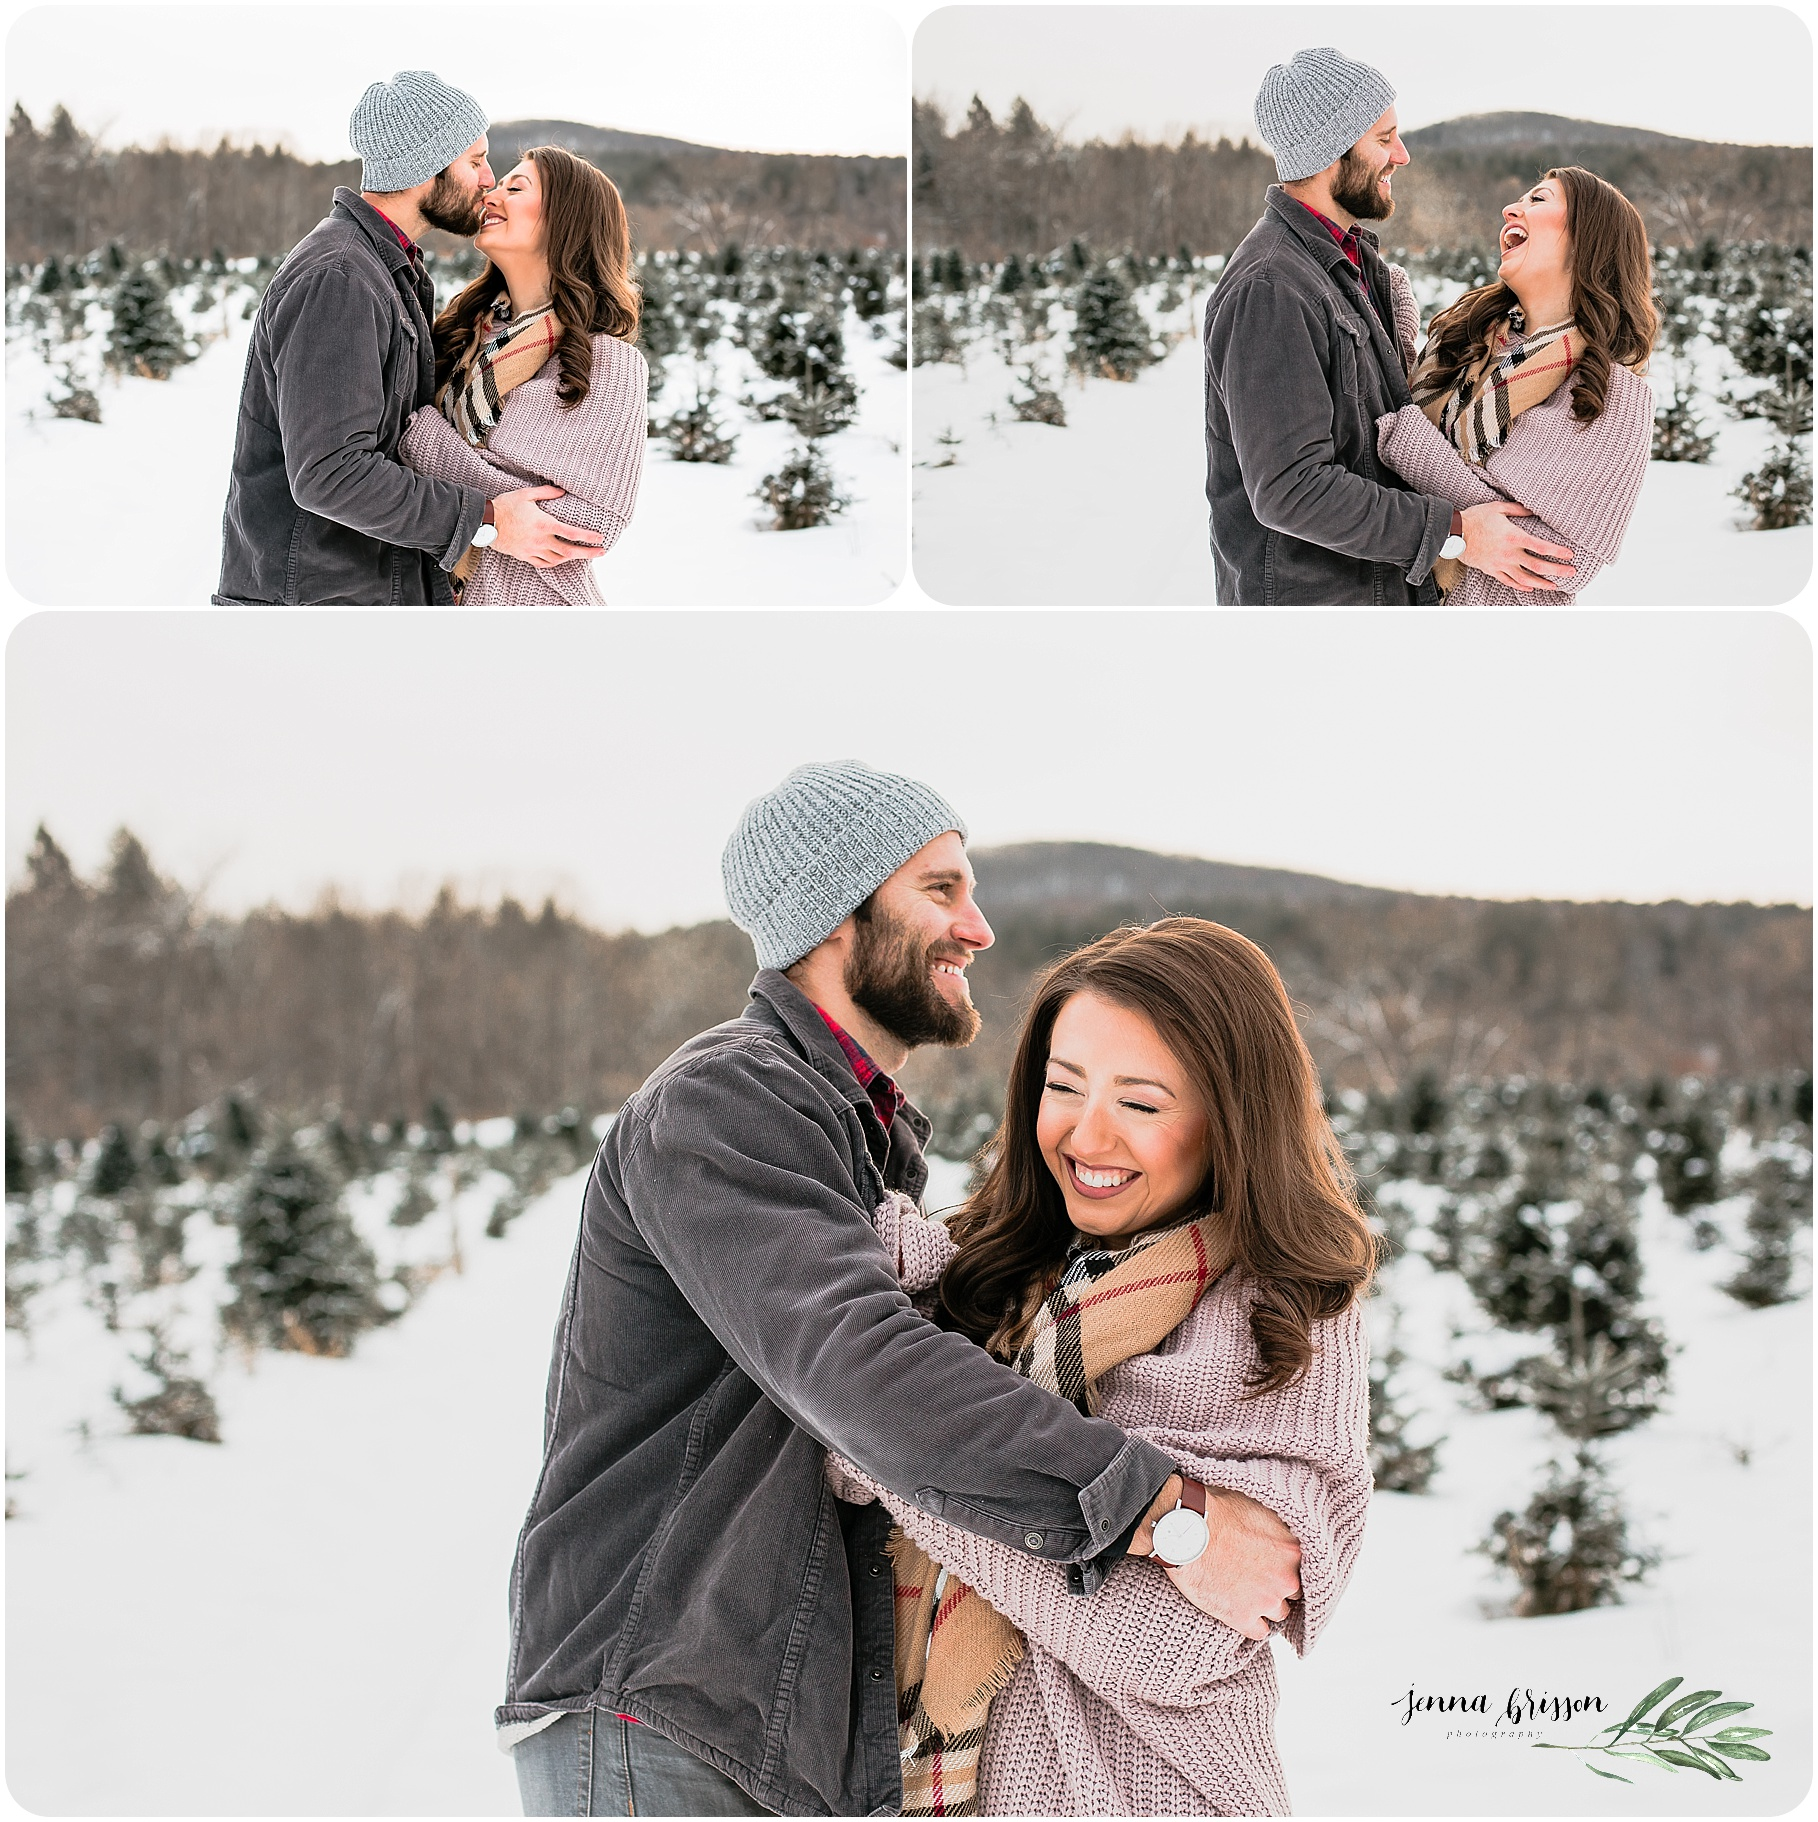 Vermont Winter Couple Photography Session